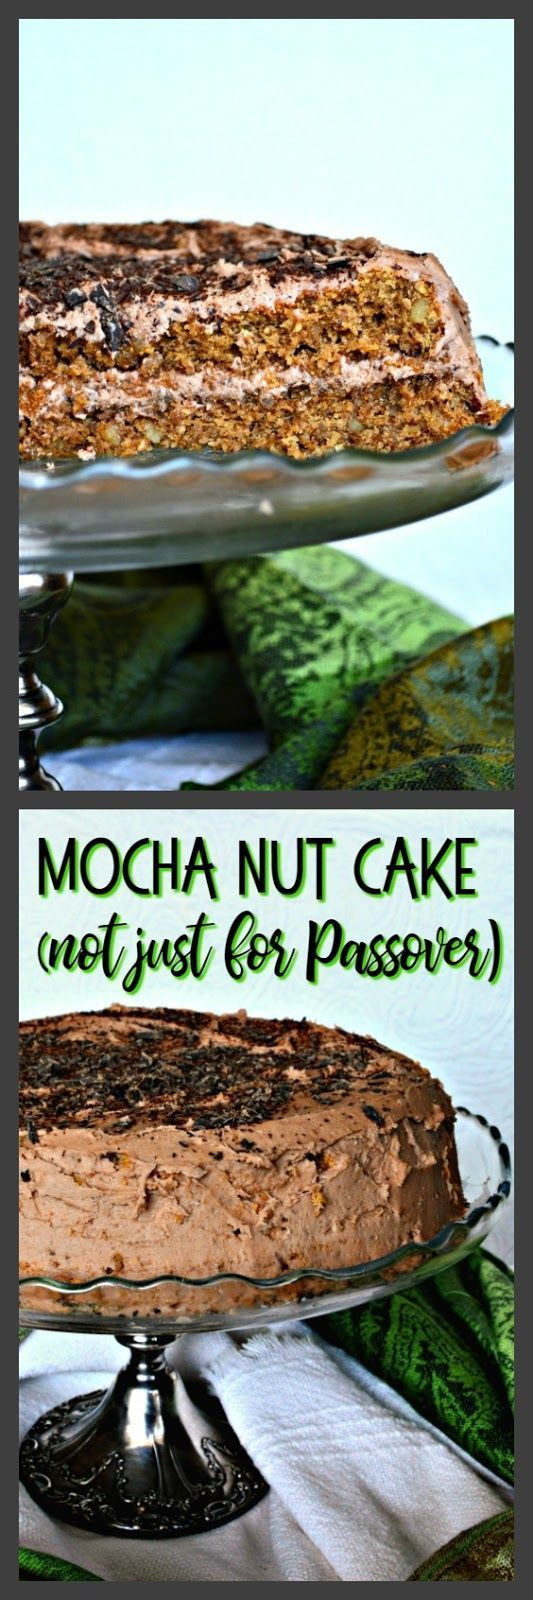 Best 23 Passover Birthday Cake Recipes - Best Round Up Recipe Collections